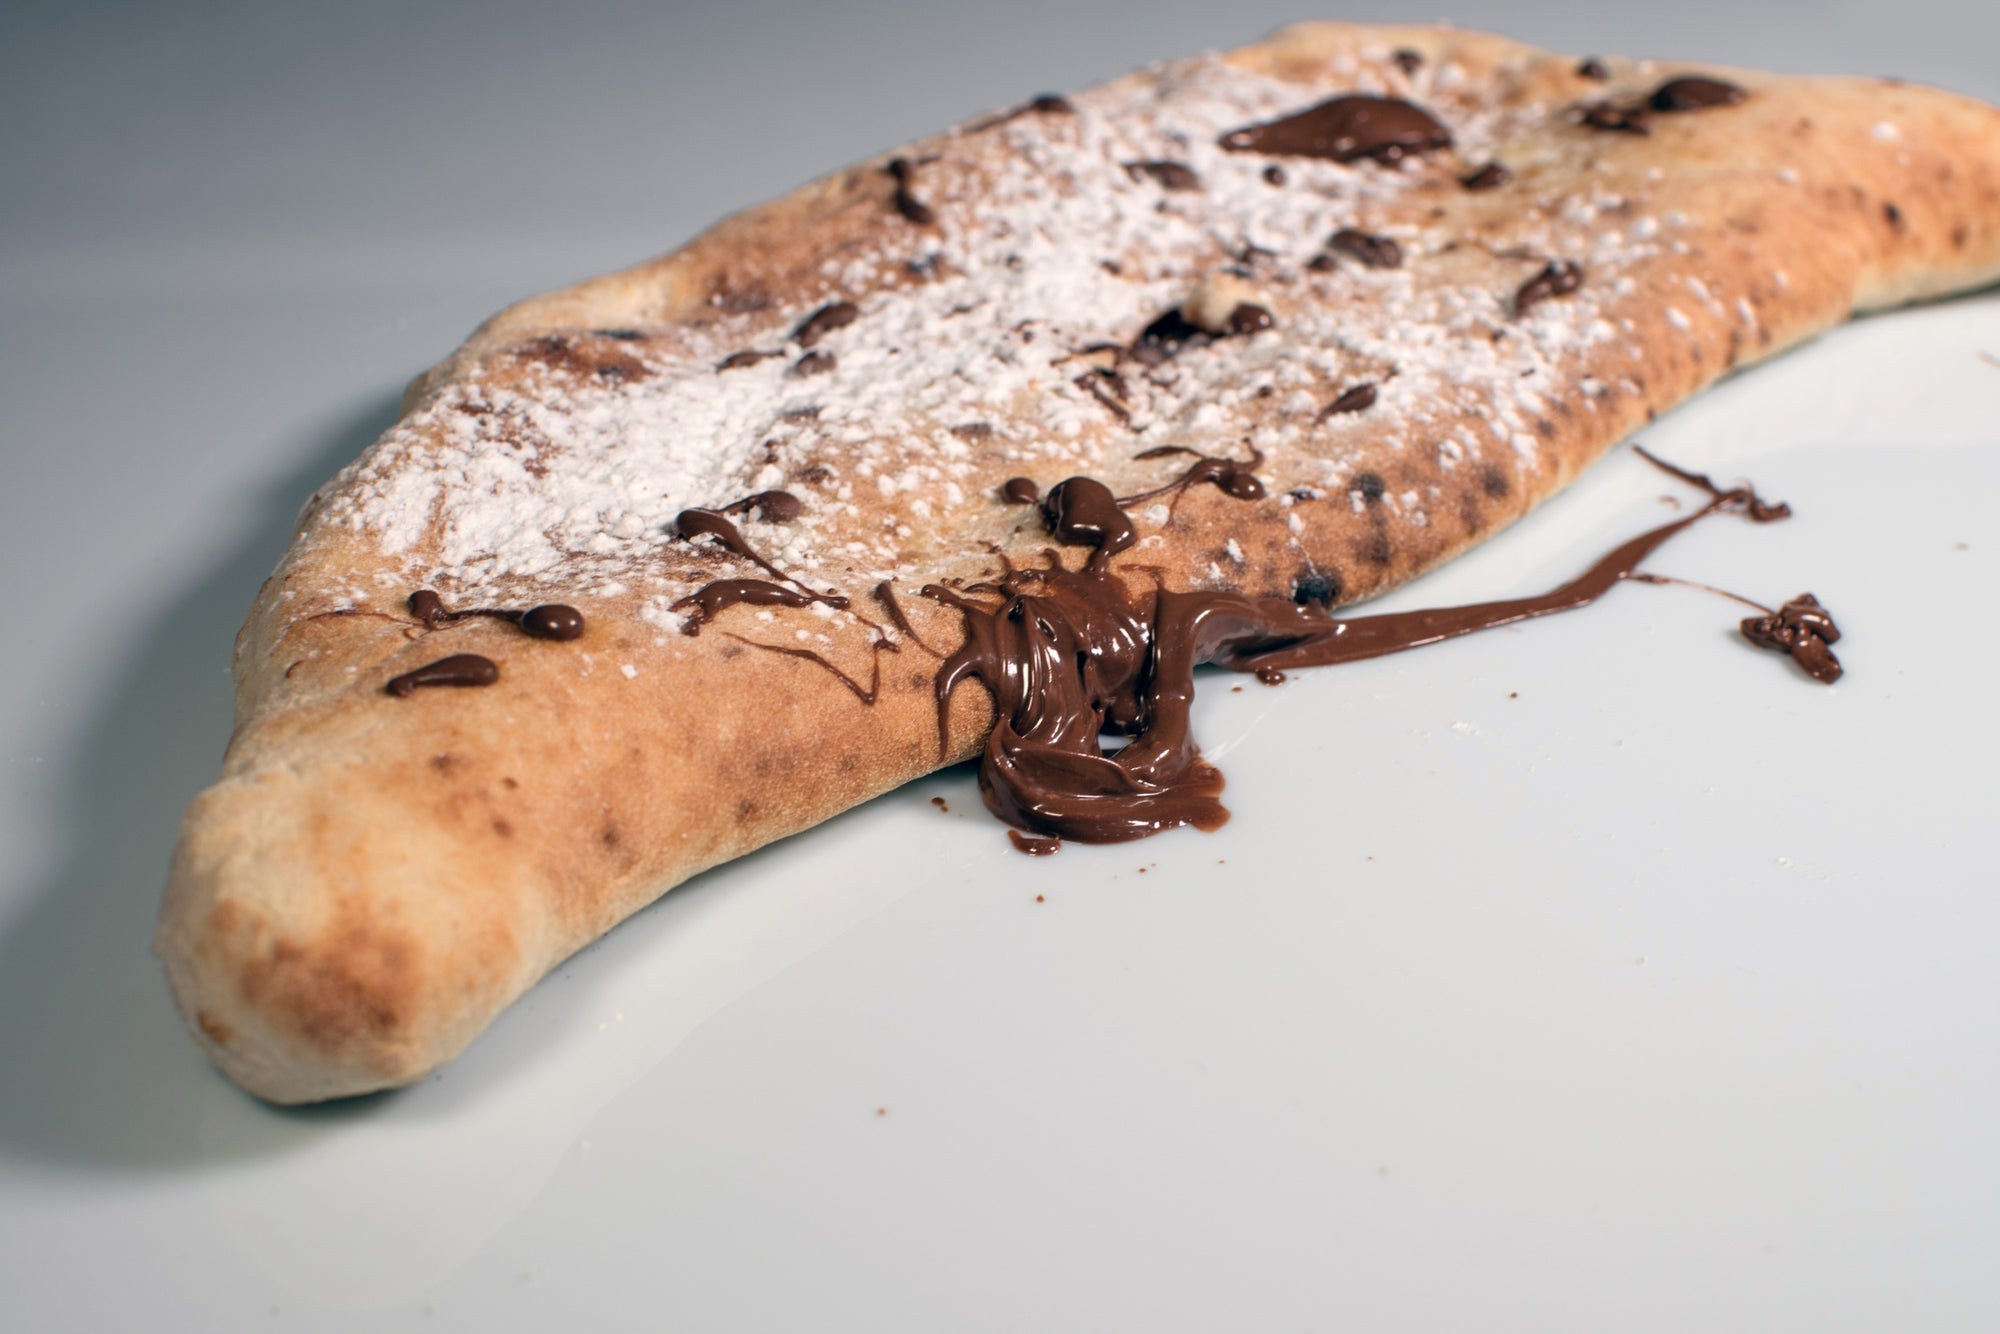 Hazelnut cream and Truffle pizza